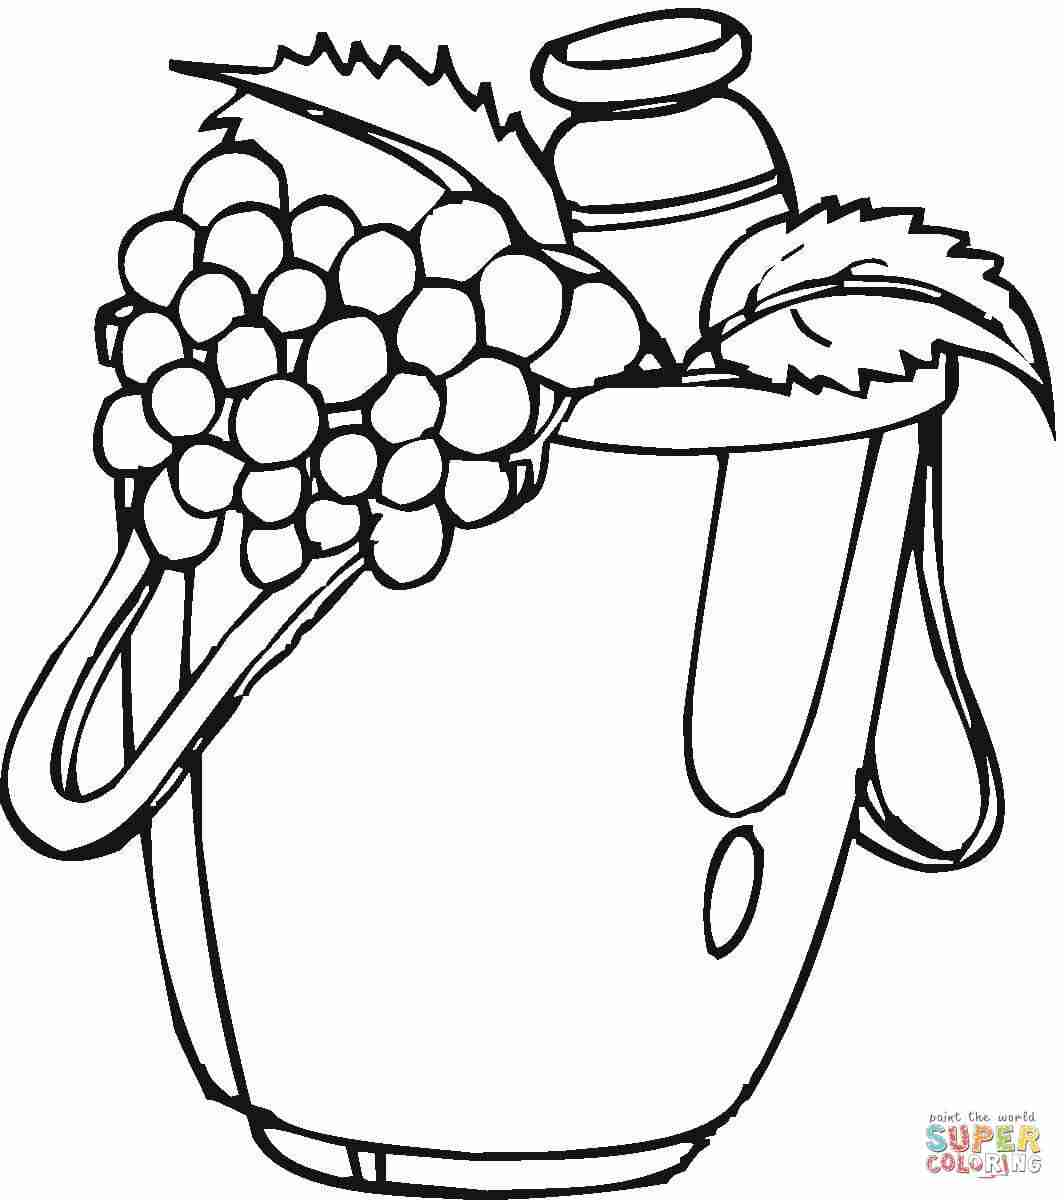 1064x1200 Shopping Cart Coloring Page Biz On Hope You Feel Better Soon